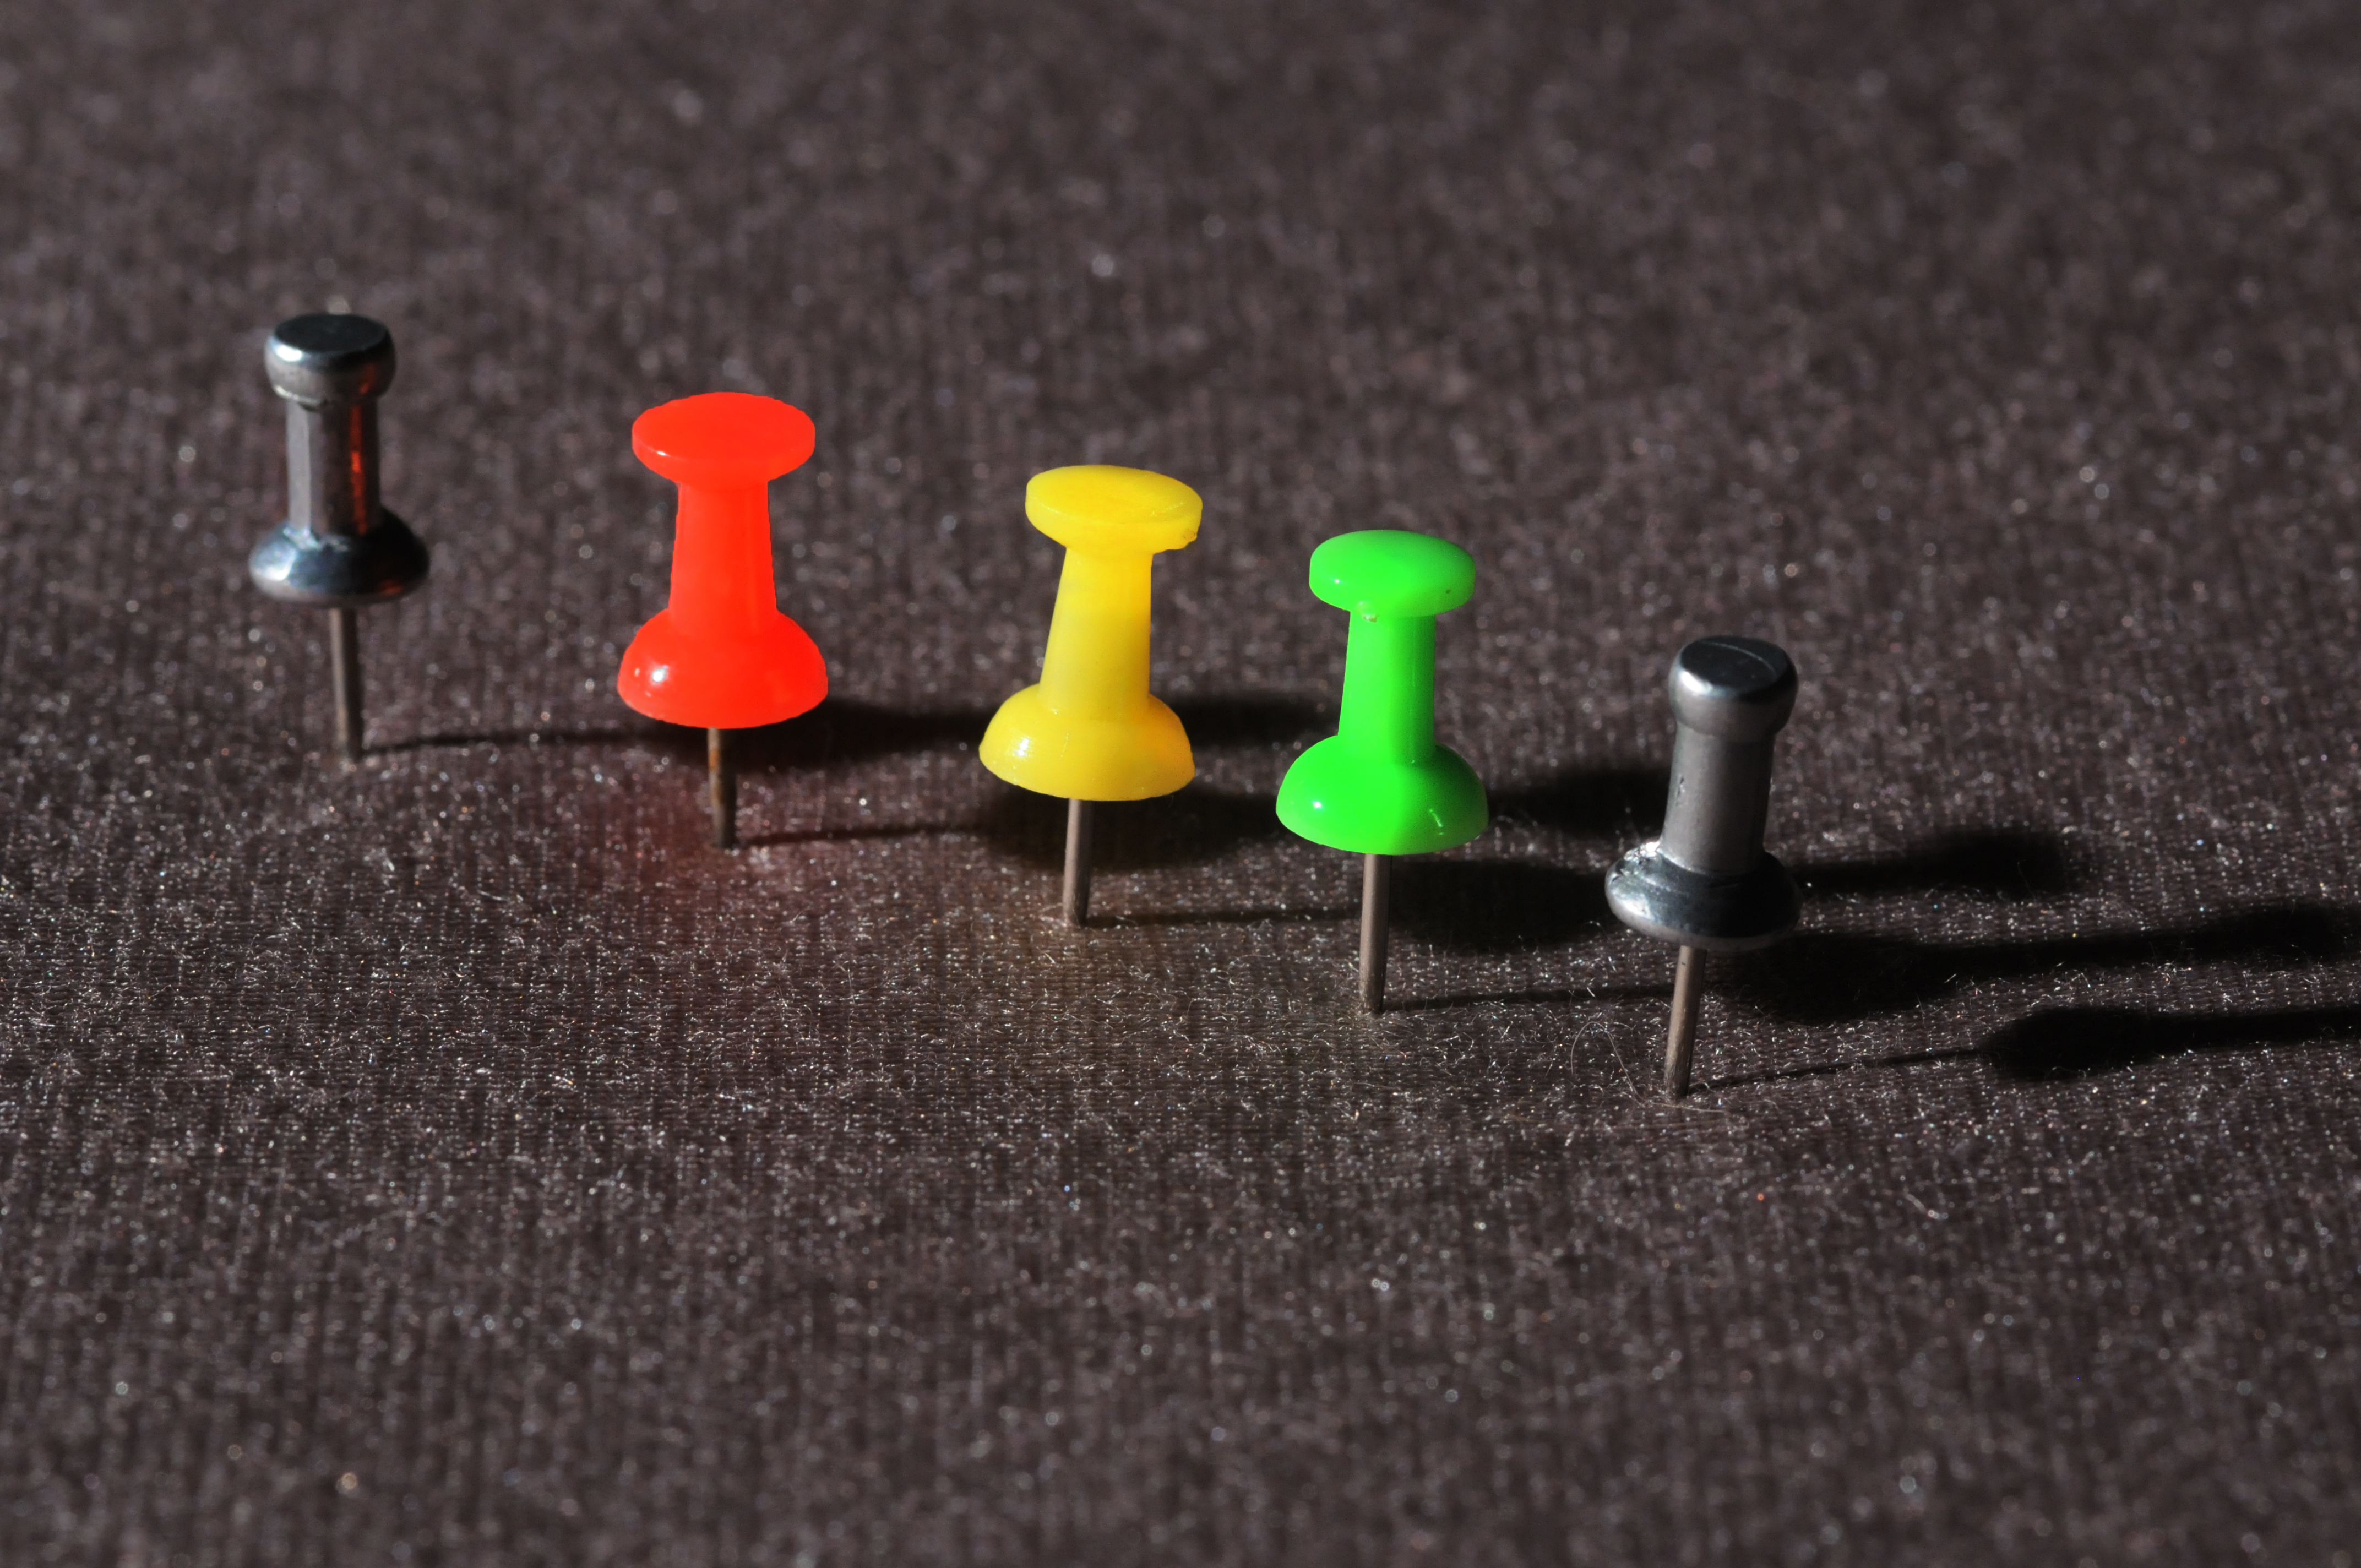 A line of colored pushpins